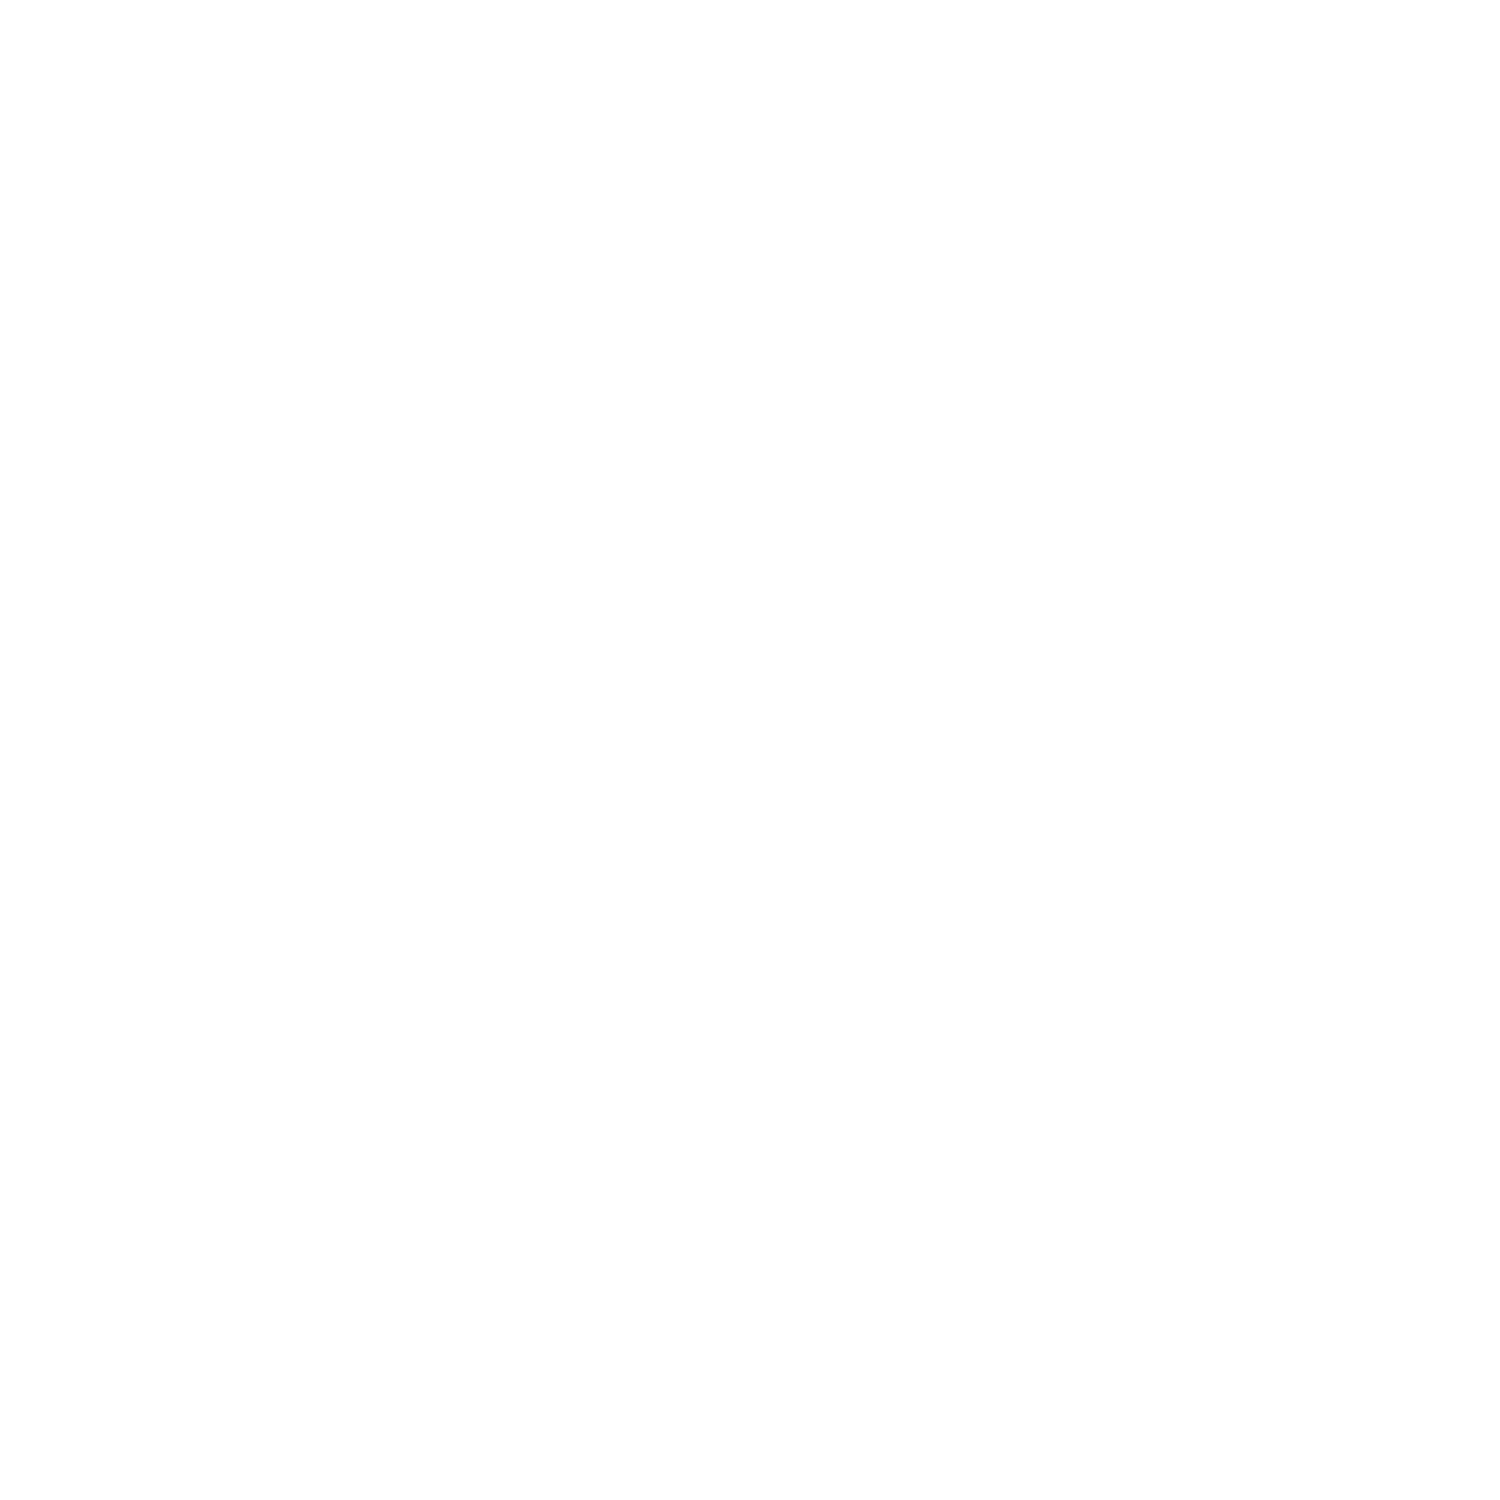 The Noll Team